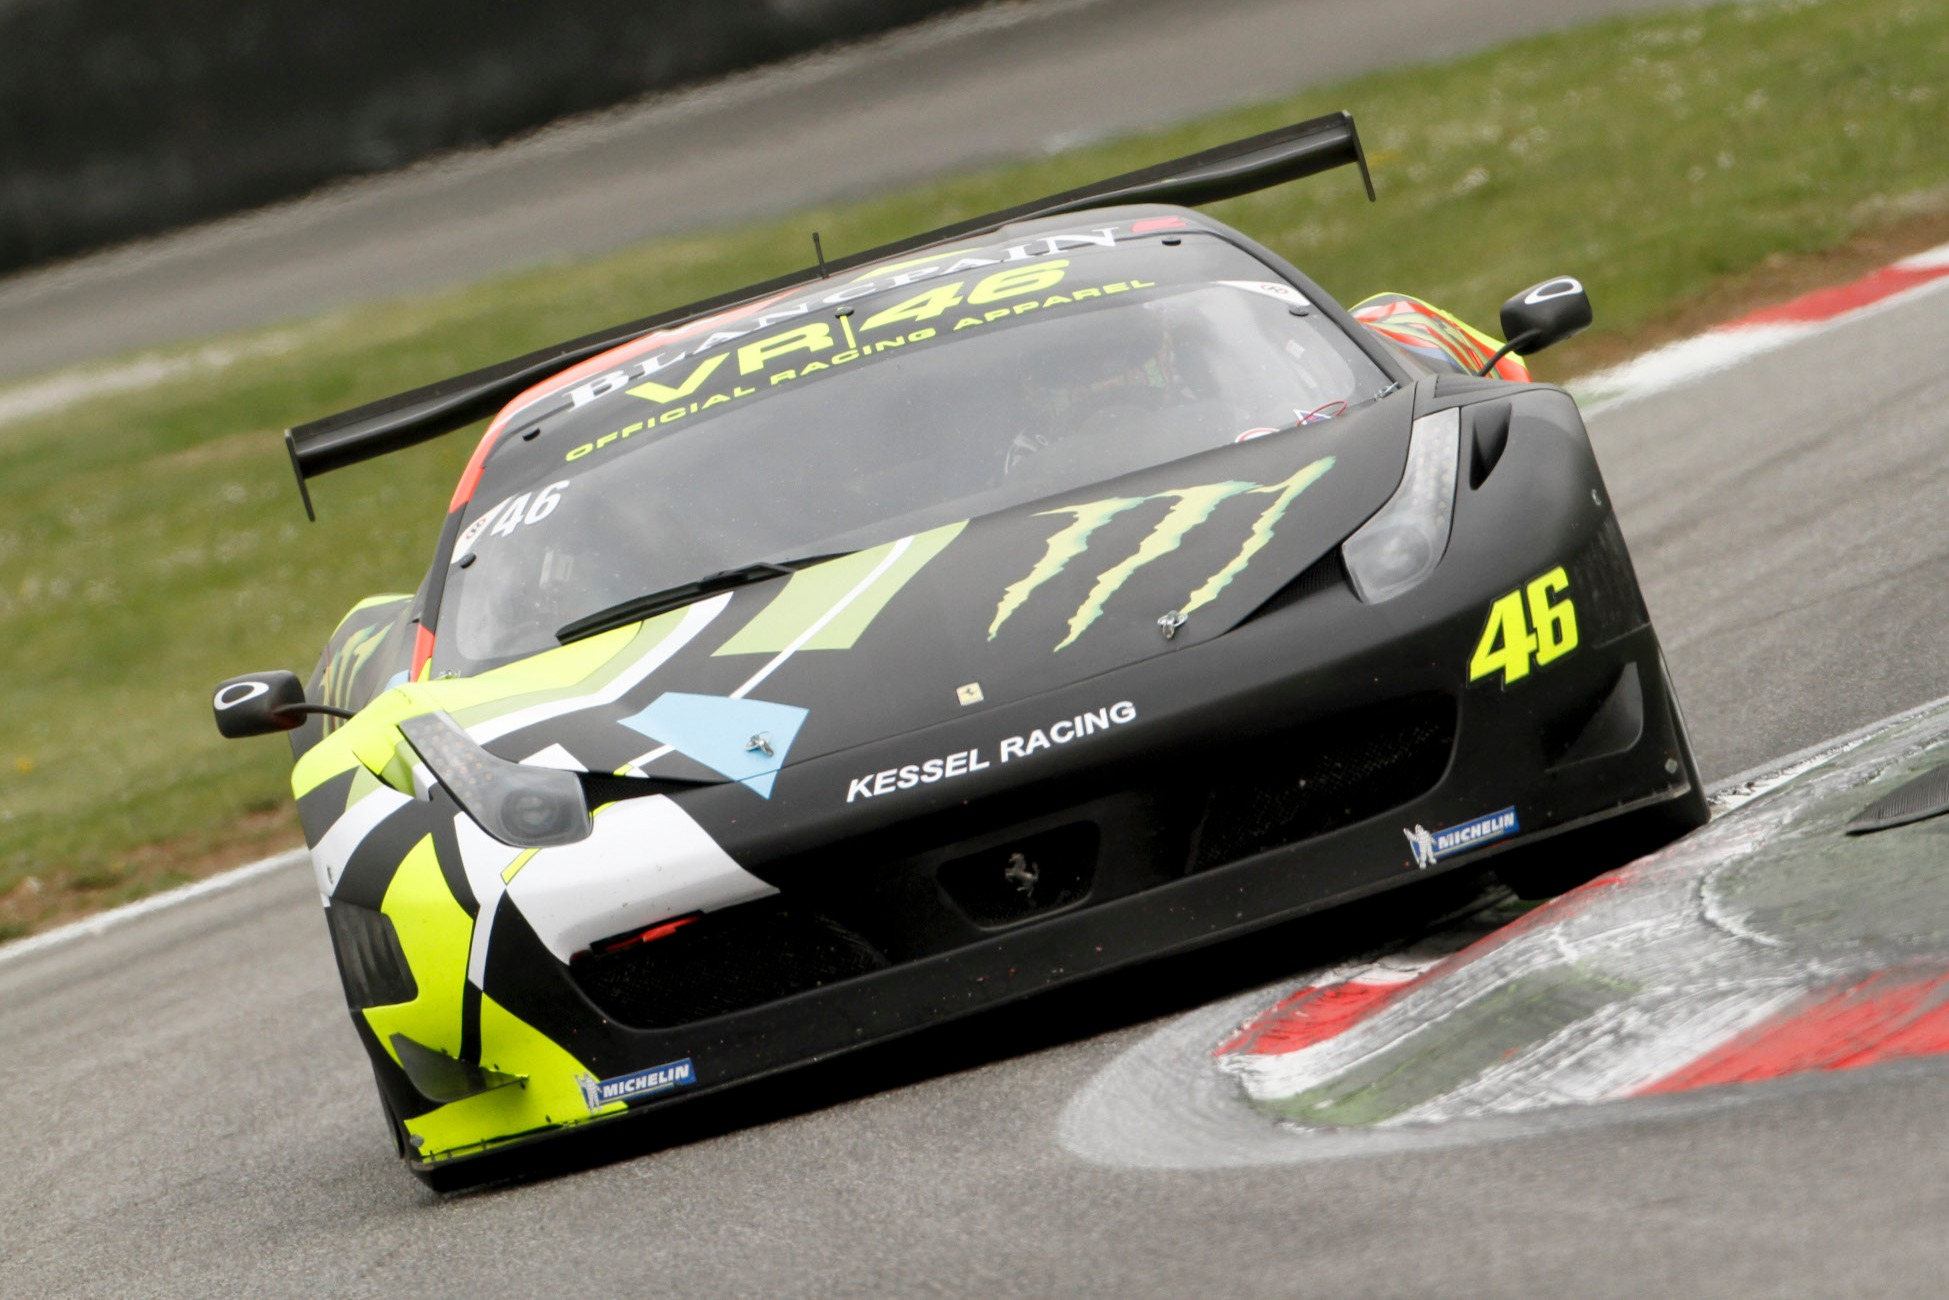 Valentino Rossi in Blancpain Endurance Series action at Monza in 2012